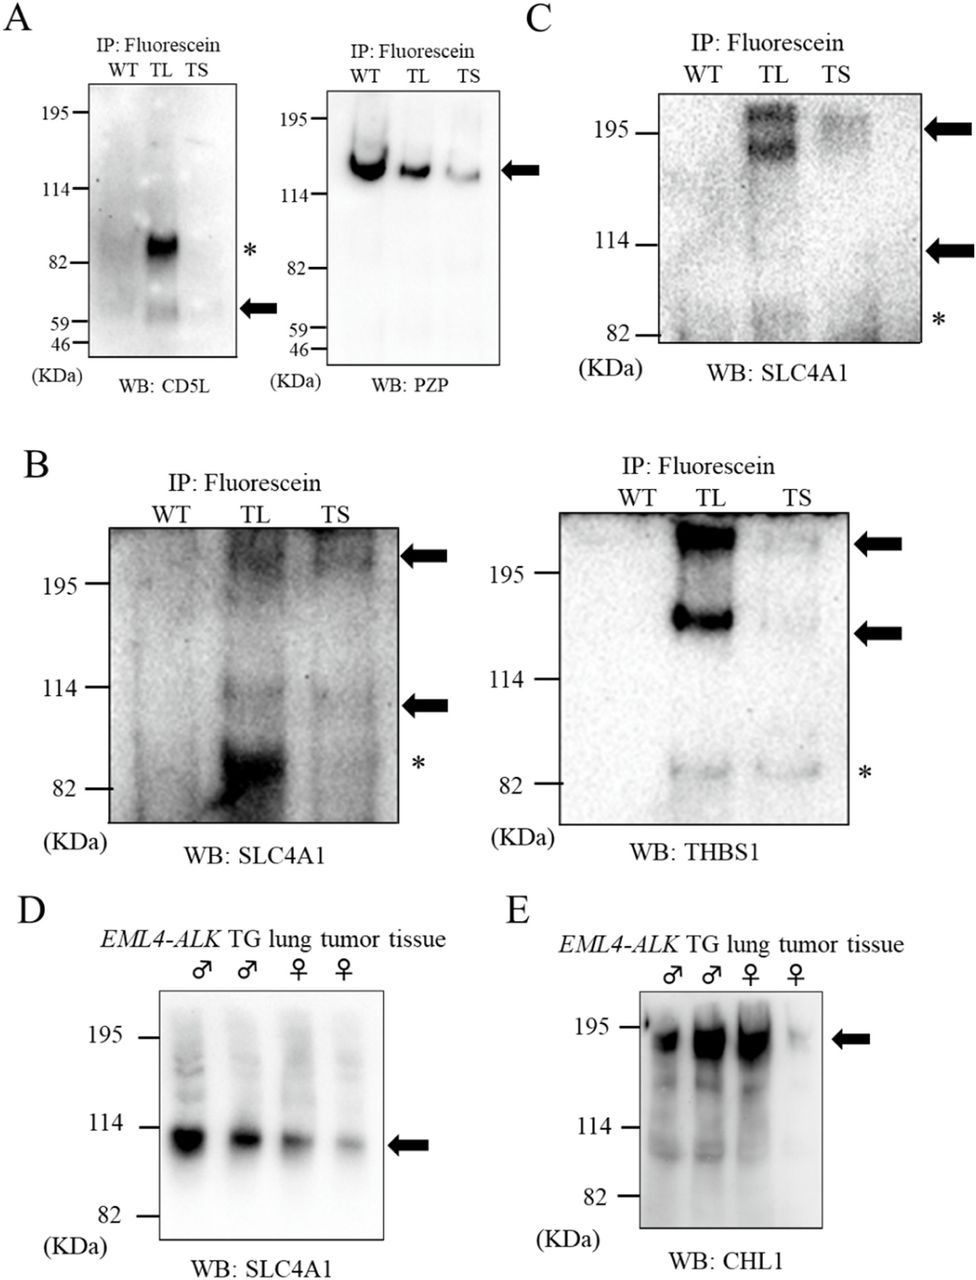 Measurement of CHL1-SLC4A1 BiEV in serum EVs. ( A ) Measurement of fluorescein-labeled SLC4A1 using a sandwich ELISA. The serum EVs from 12 wild-type mice (open bar) and 18 small lung tumor-bearing EML4-ALK transgenic mice (closed bar) were applied to EMARS reactions followed by ELISA measurements, respectively. The EMARS products containing fluorescein-labeled SLC4A1 were added to anti-SLC4A1 antibody-coated ELISA plates. A BiEV index (SLC4A1) was calculated based on the value of fluorescein-labeled SLC4A1 in standard samples. ( B ) Comparison of BiEV indexes between WT and TS. The BiEV indexes of TS were significantly higher than that of WT ( p = 8.9 × 10 −3 ) by a Mann–Whitney test. ( C ) ROC curve for BiEV indexes. AUC was calculated as 0.782. ( D ) A scatter-plot of tumor mass versus BiEV index. Correlation between BiEV index and lung tumor mass of TS was estimated using Spearman's rank correlation coefficient (0.389: p = 0.111). ( E ) Western blot analysis of SLC4A1 in whole-serum EVs from WT and TS. An aliquot of the serum from 12 animals in the wild-type group and 18 animals in small lung tumor-bearing EML4-ALK transgenic mice was mixed in equal proportions followed by EV purification. Arrows indicate the detected band of SLC4A1. Asterisks indicate unknown bands (predicted as non-specific or partial fragments).